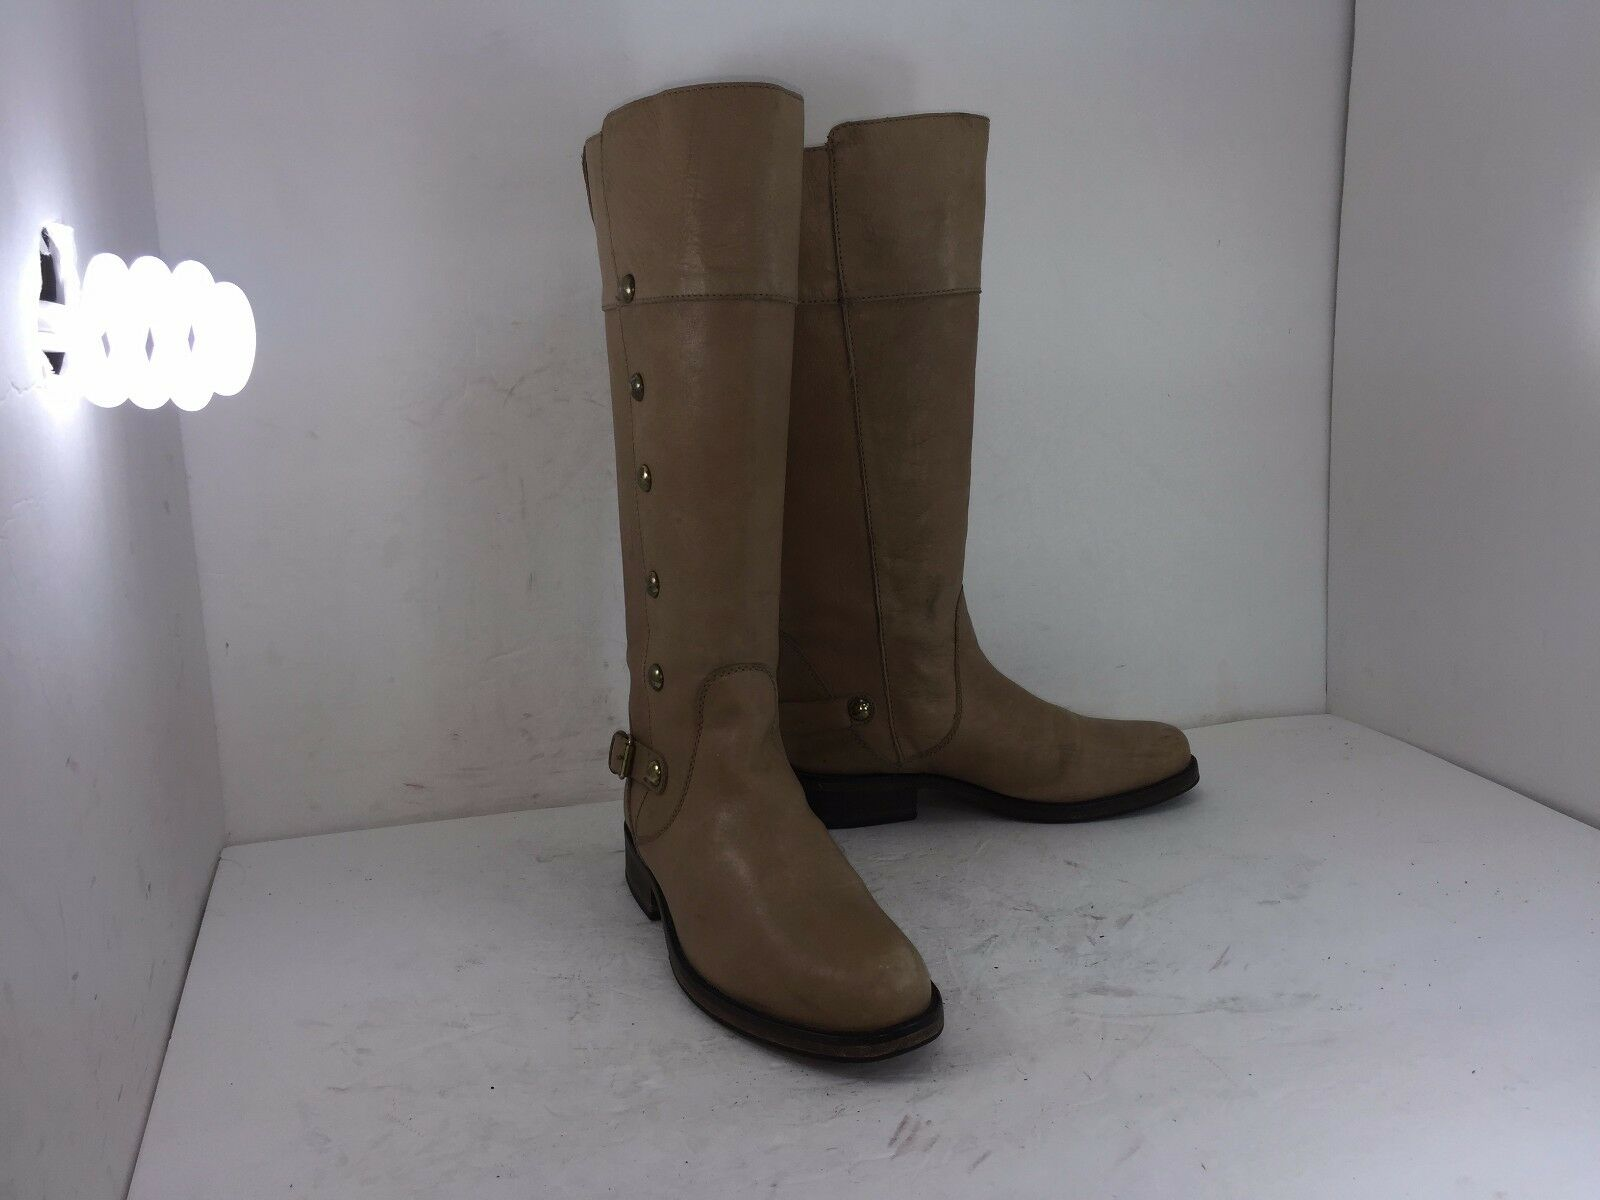 STEVE MADDEN RIDING BOOTS OLSTER BOOTS BEIGE SZ 7.5 IN GREAT CONDITION